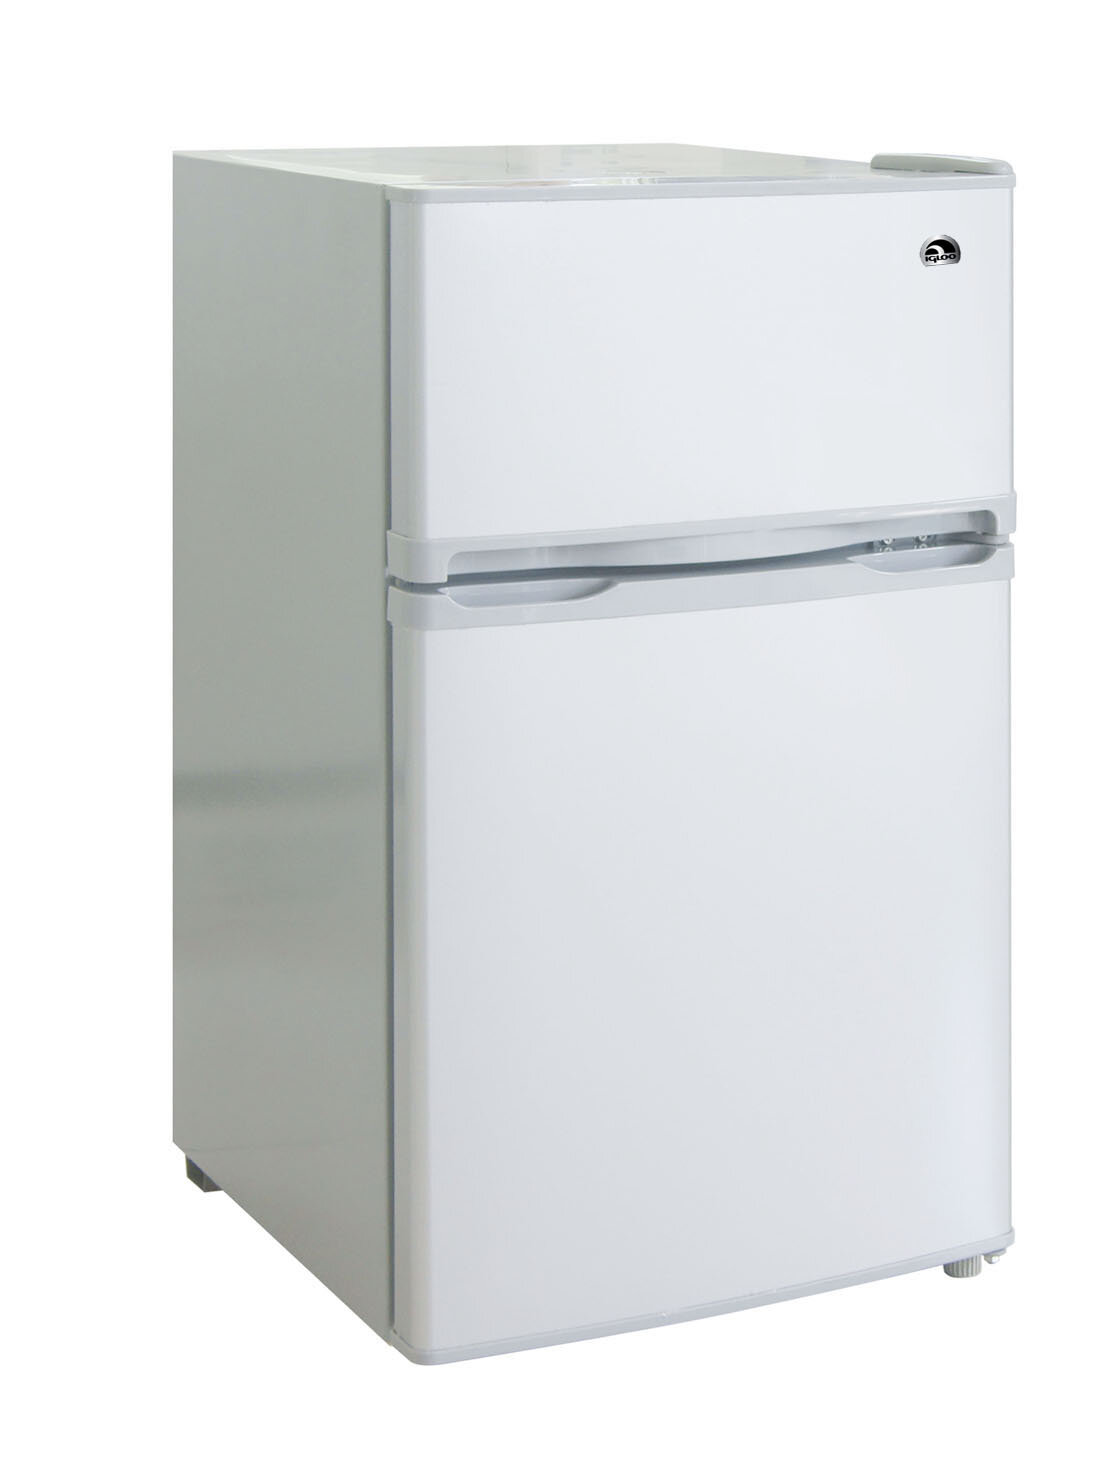 Igloo 18 Inch 3 2 Cu Ft Convertible Compact Refrigerator